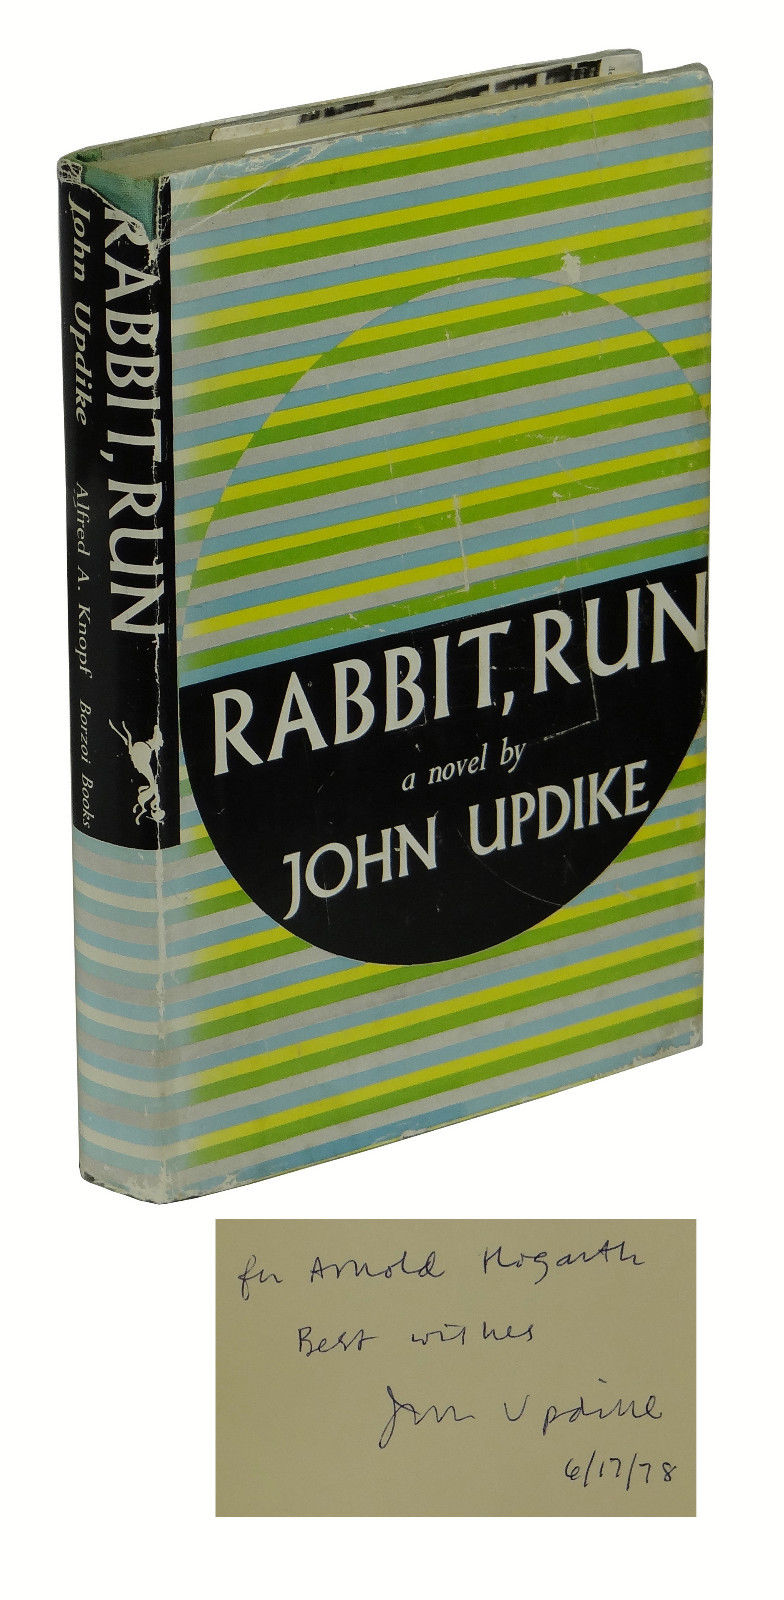 happiness in the rabbit by john updike Rabbit remembered is a novella sequel to the four john updike rabbit novels and the dead harry angstrom's survivors fitfully entertain his memory while pursuing their own happiness.